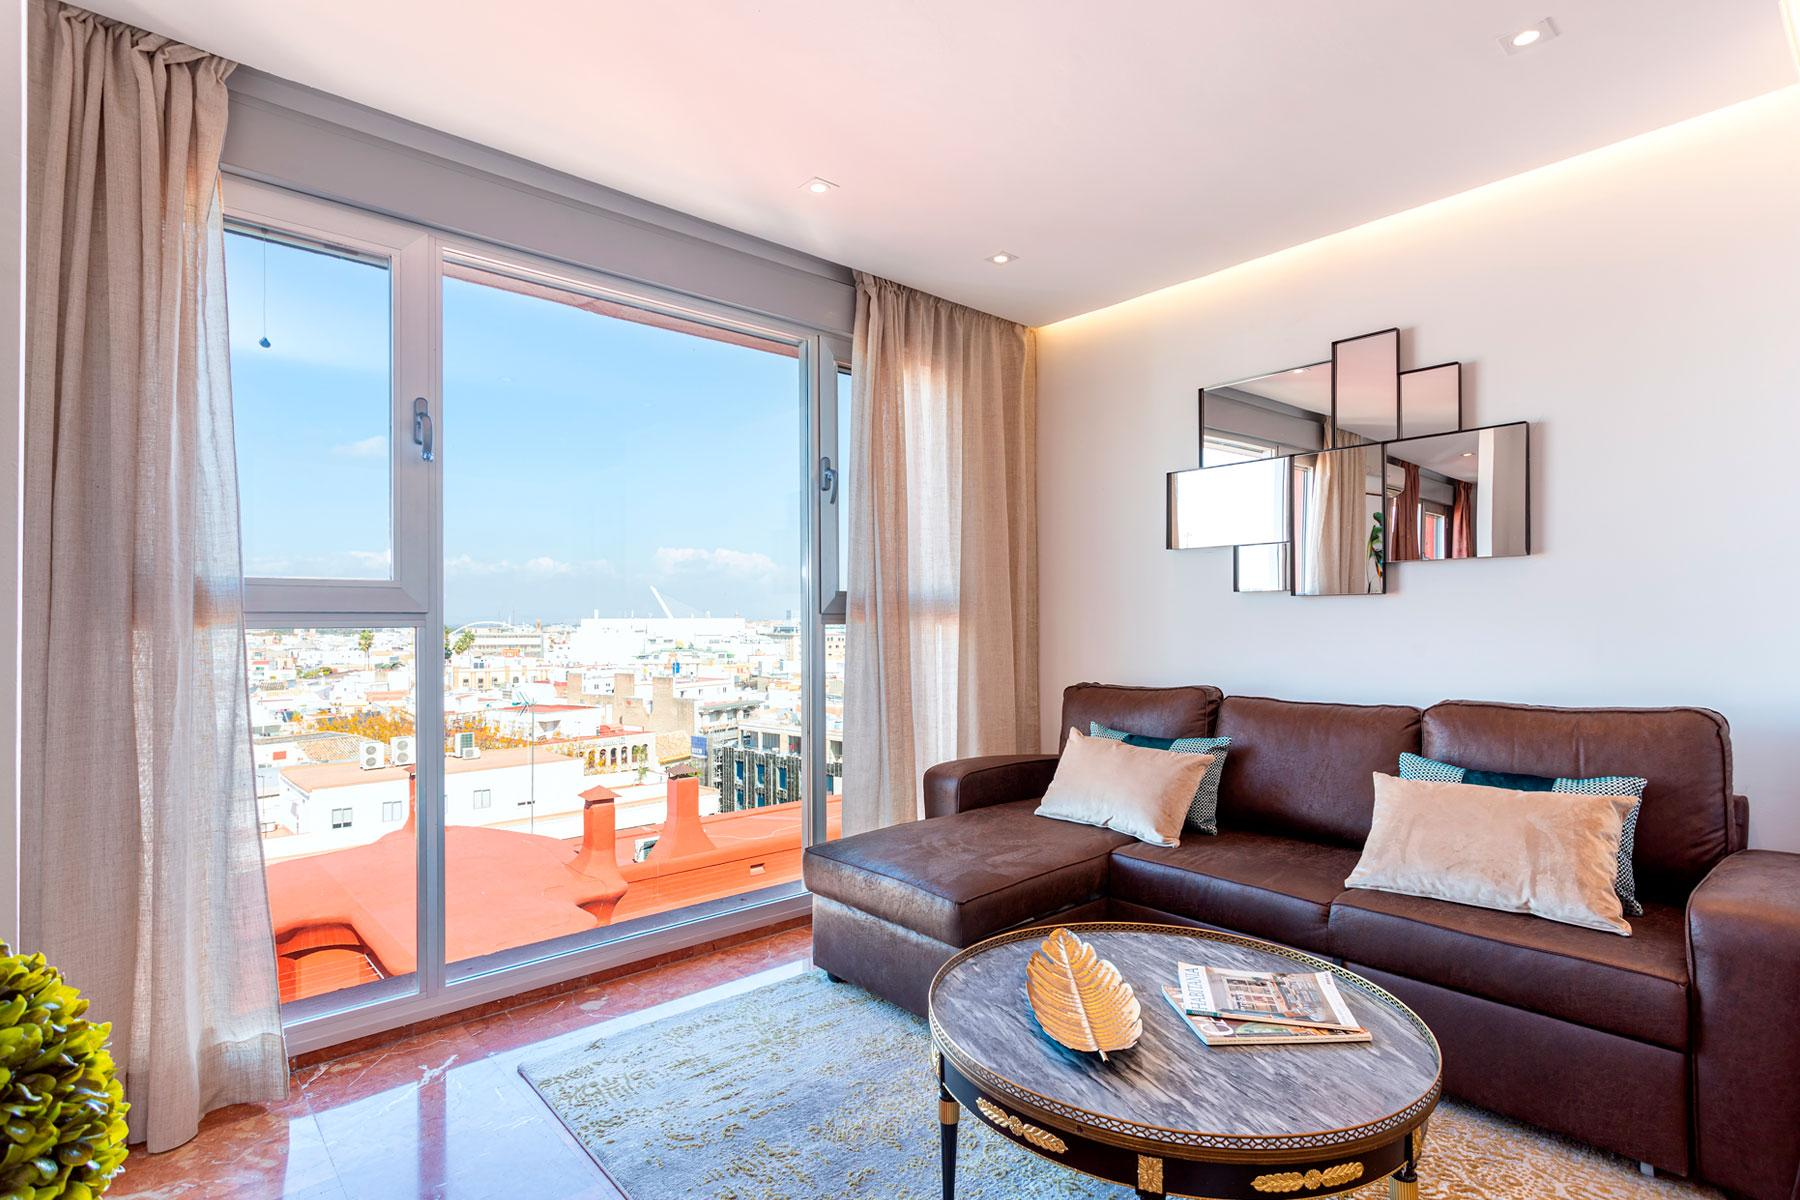 Property Image 2 - Modern San Pablo VI Apartment with Stunning City views